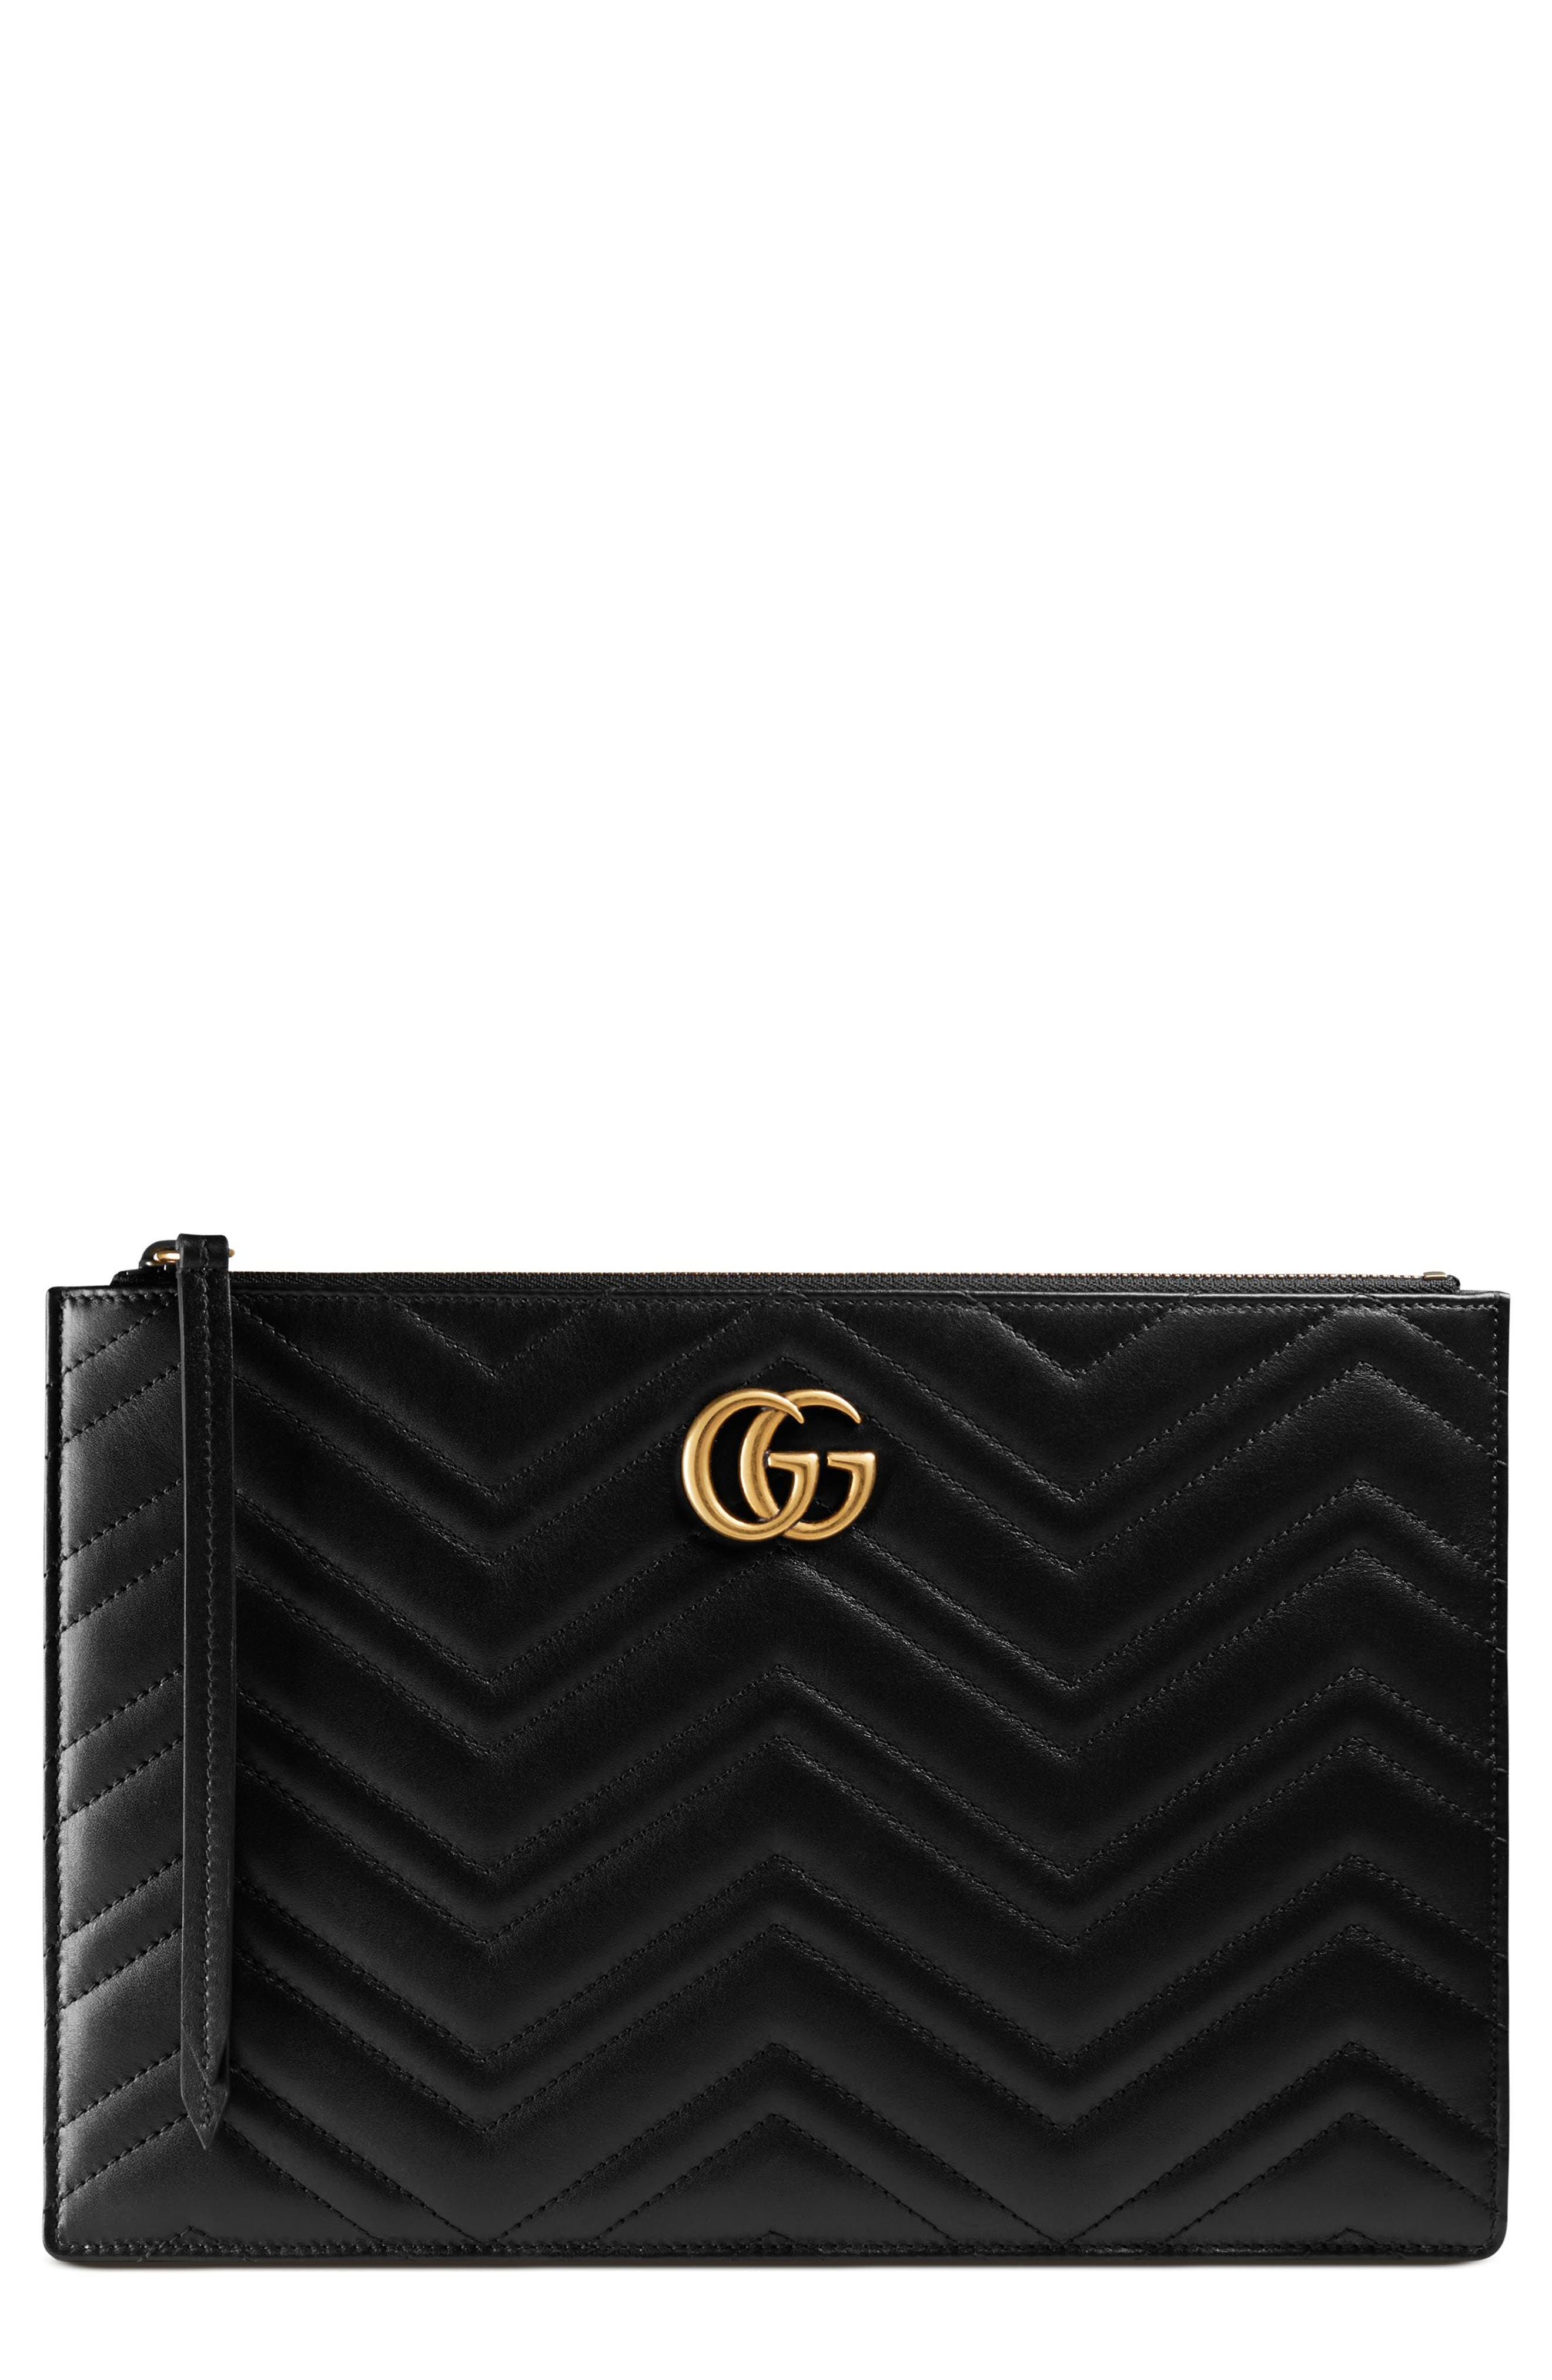 Main Image - Gucci GG Marmont Matelassé Leather Pouch